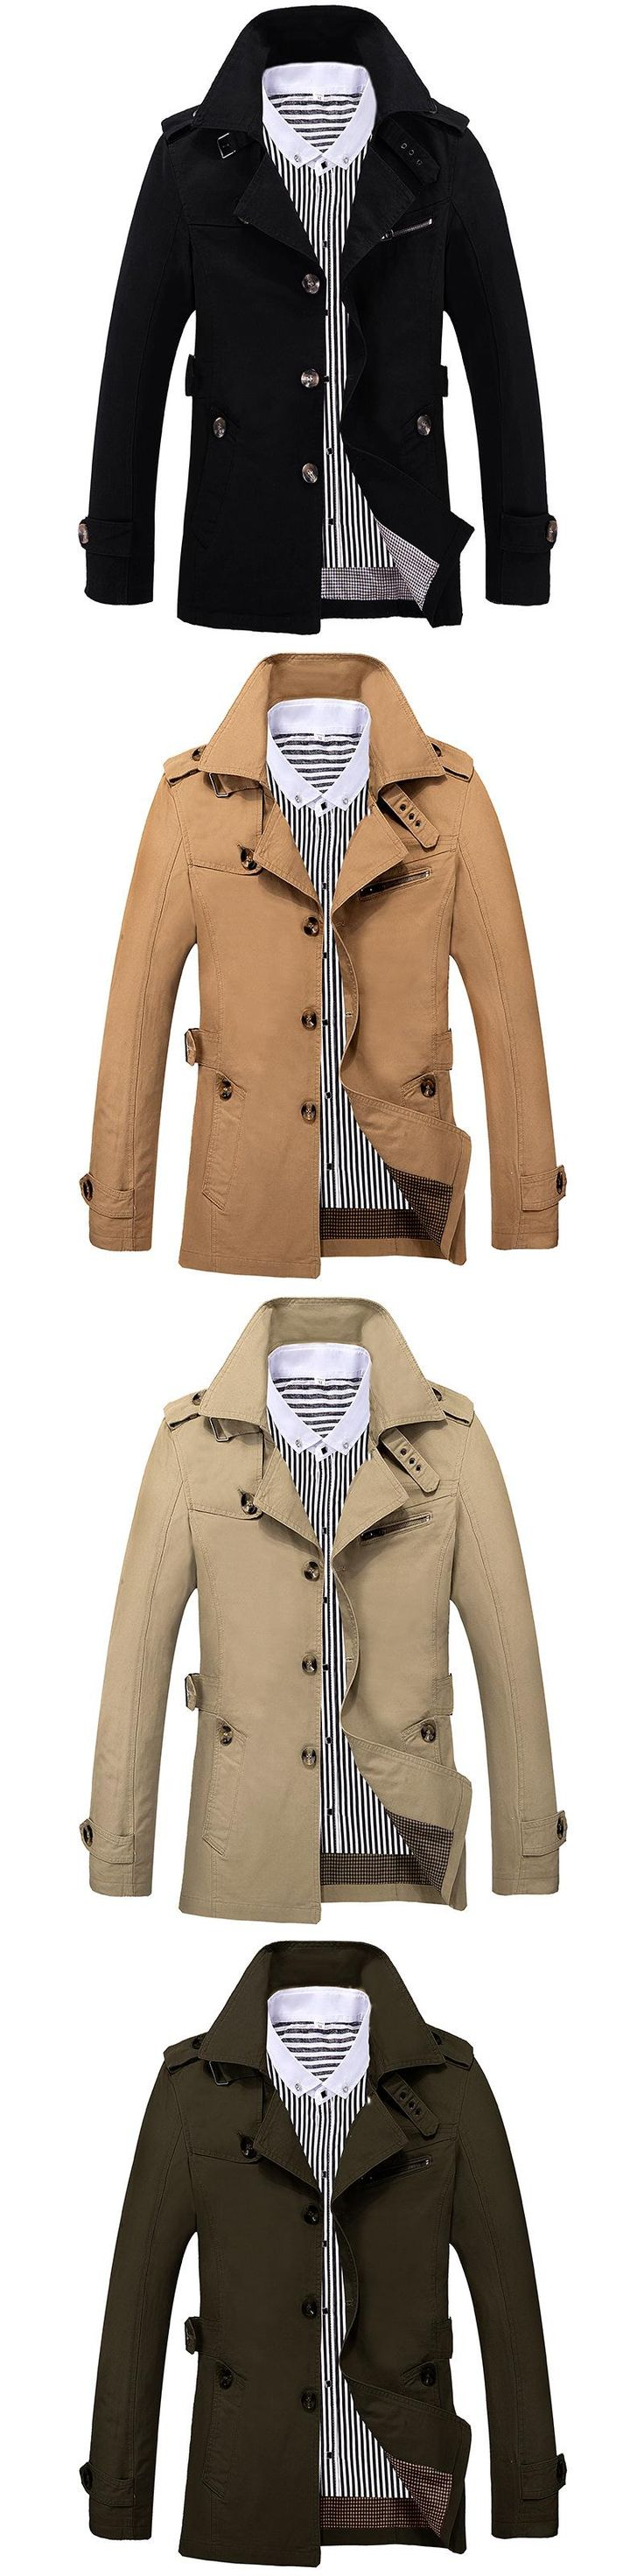 Men Trench  2017 Spring Autumn Fashion Brand Men Jacket Coats Long Overcoat Cotton Jackets Mens Outerwear COTTON Army Jackets